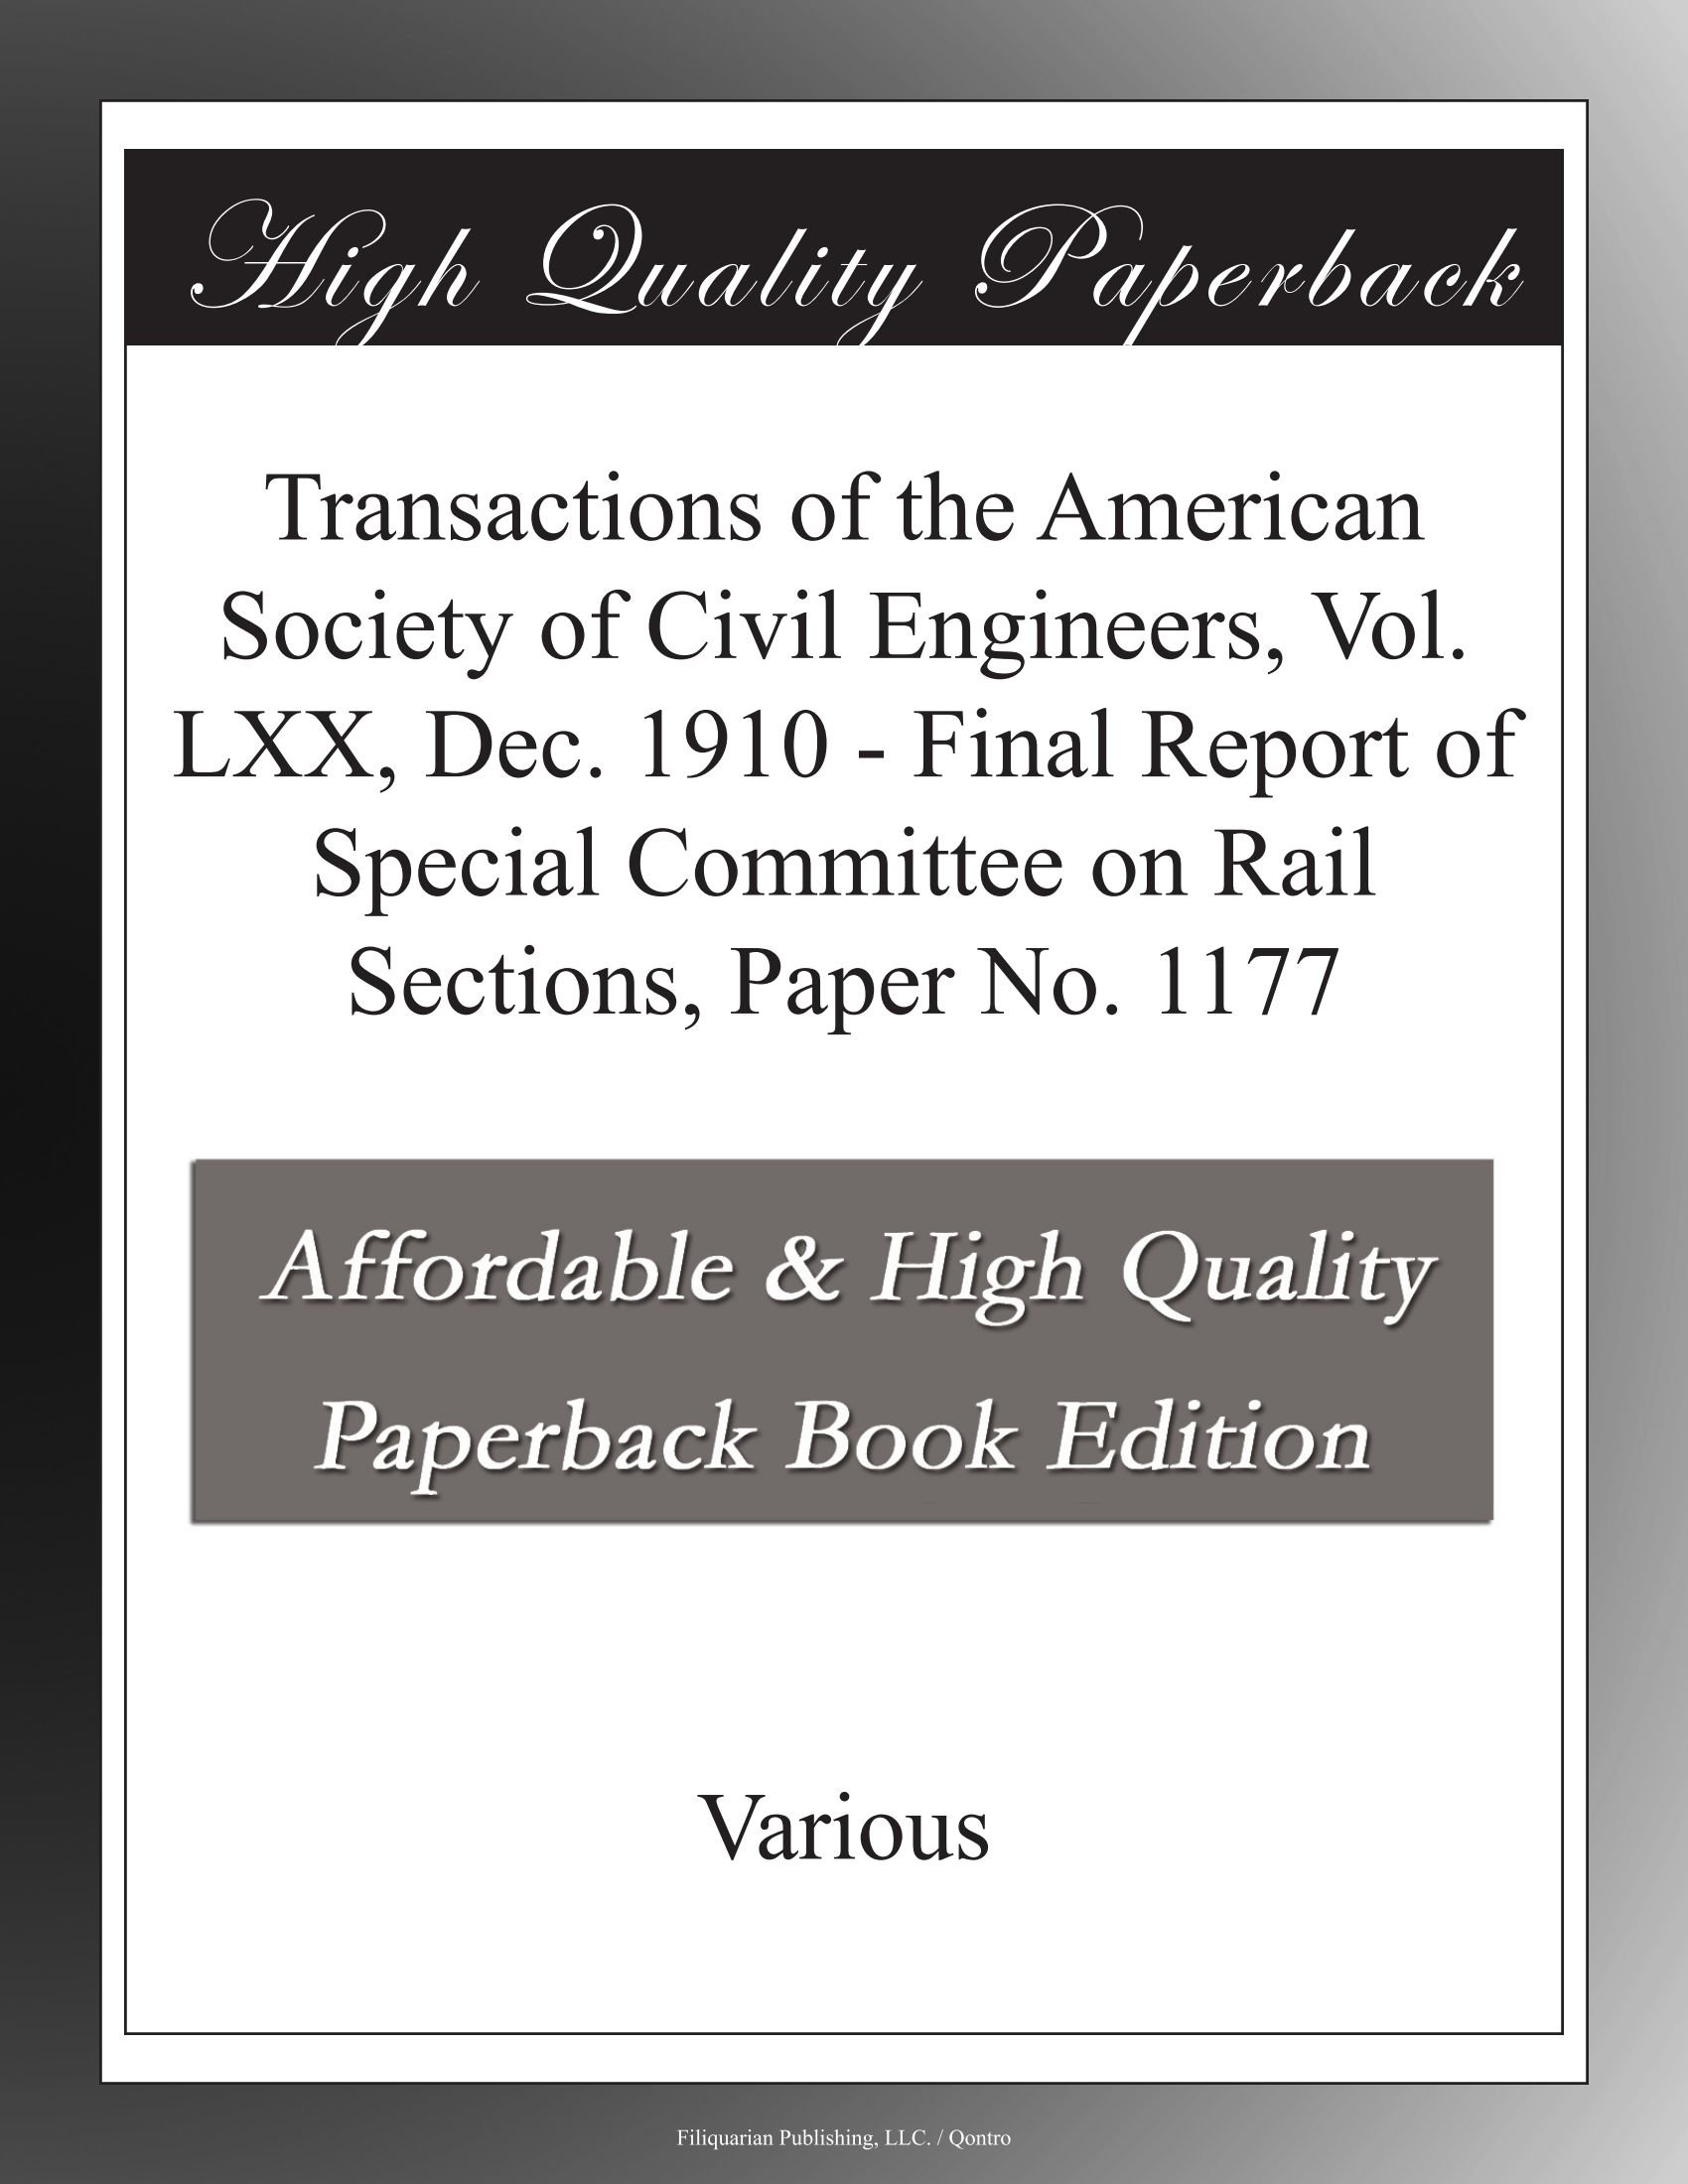 Transactions of the American Society of Civil Engineers, Vol. LXX, Dec. 1910 - Final Report of Special Committee on Rail Sections, Paper No. 1177 pdf